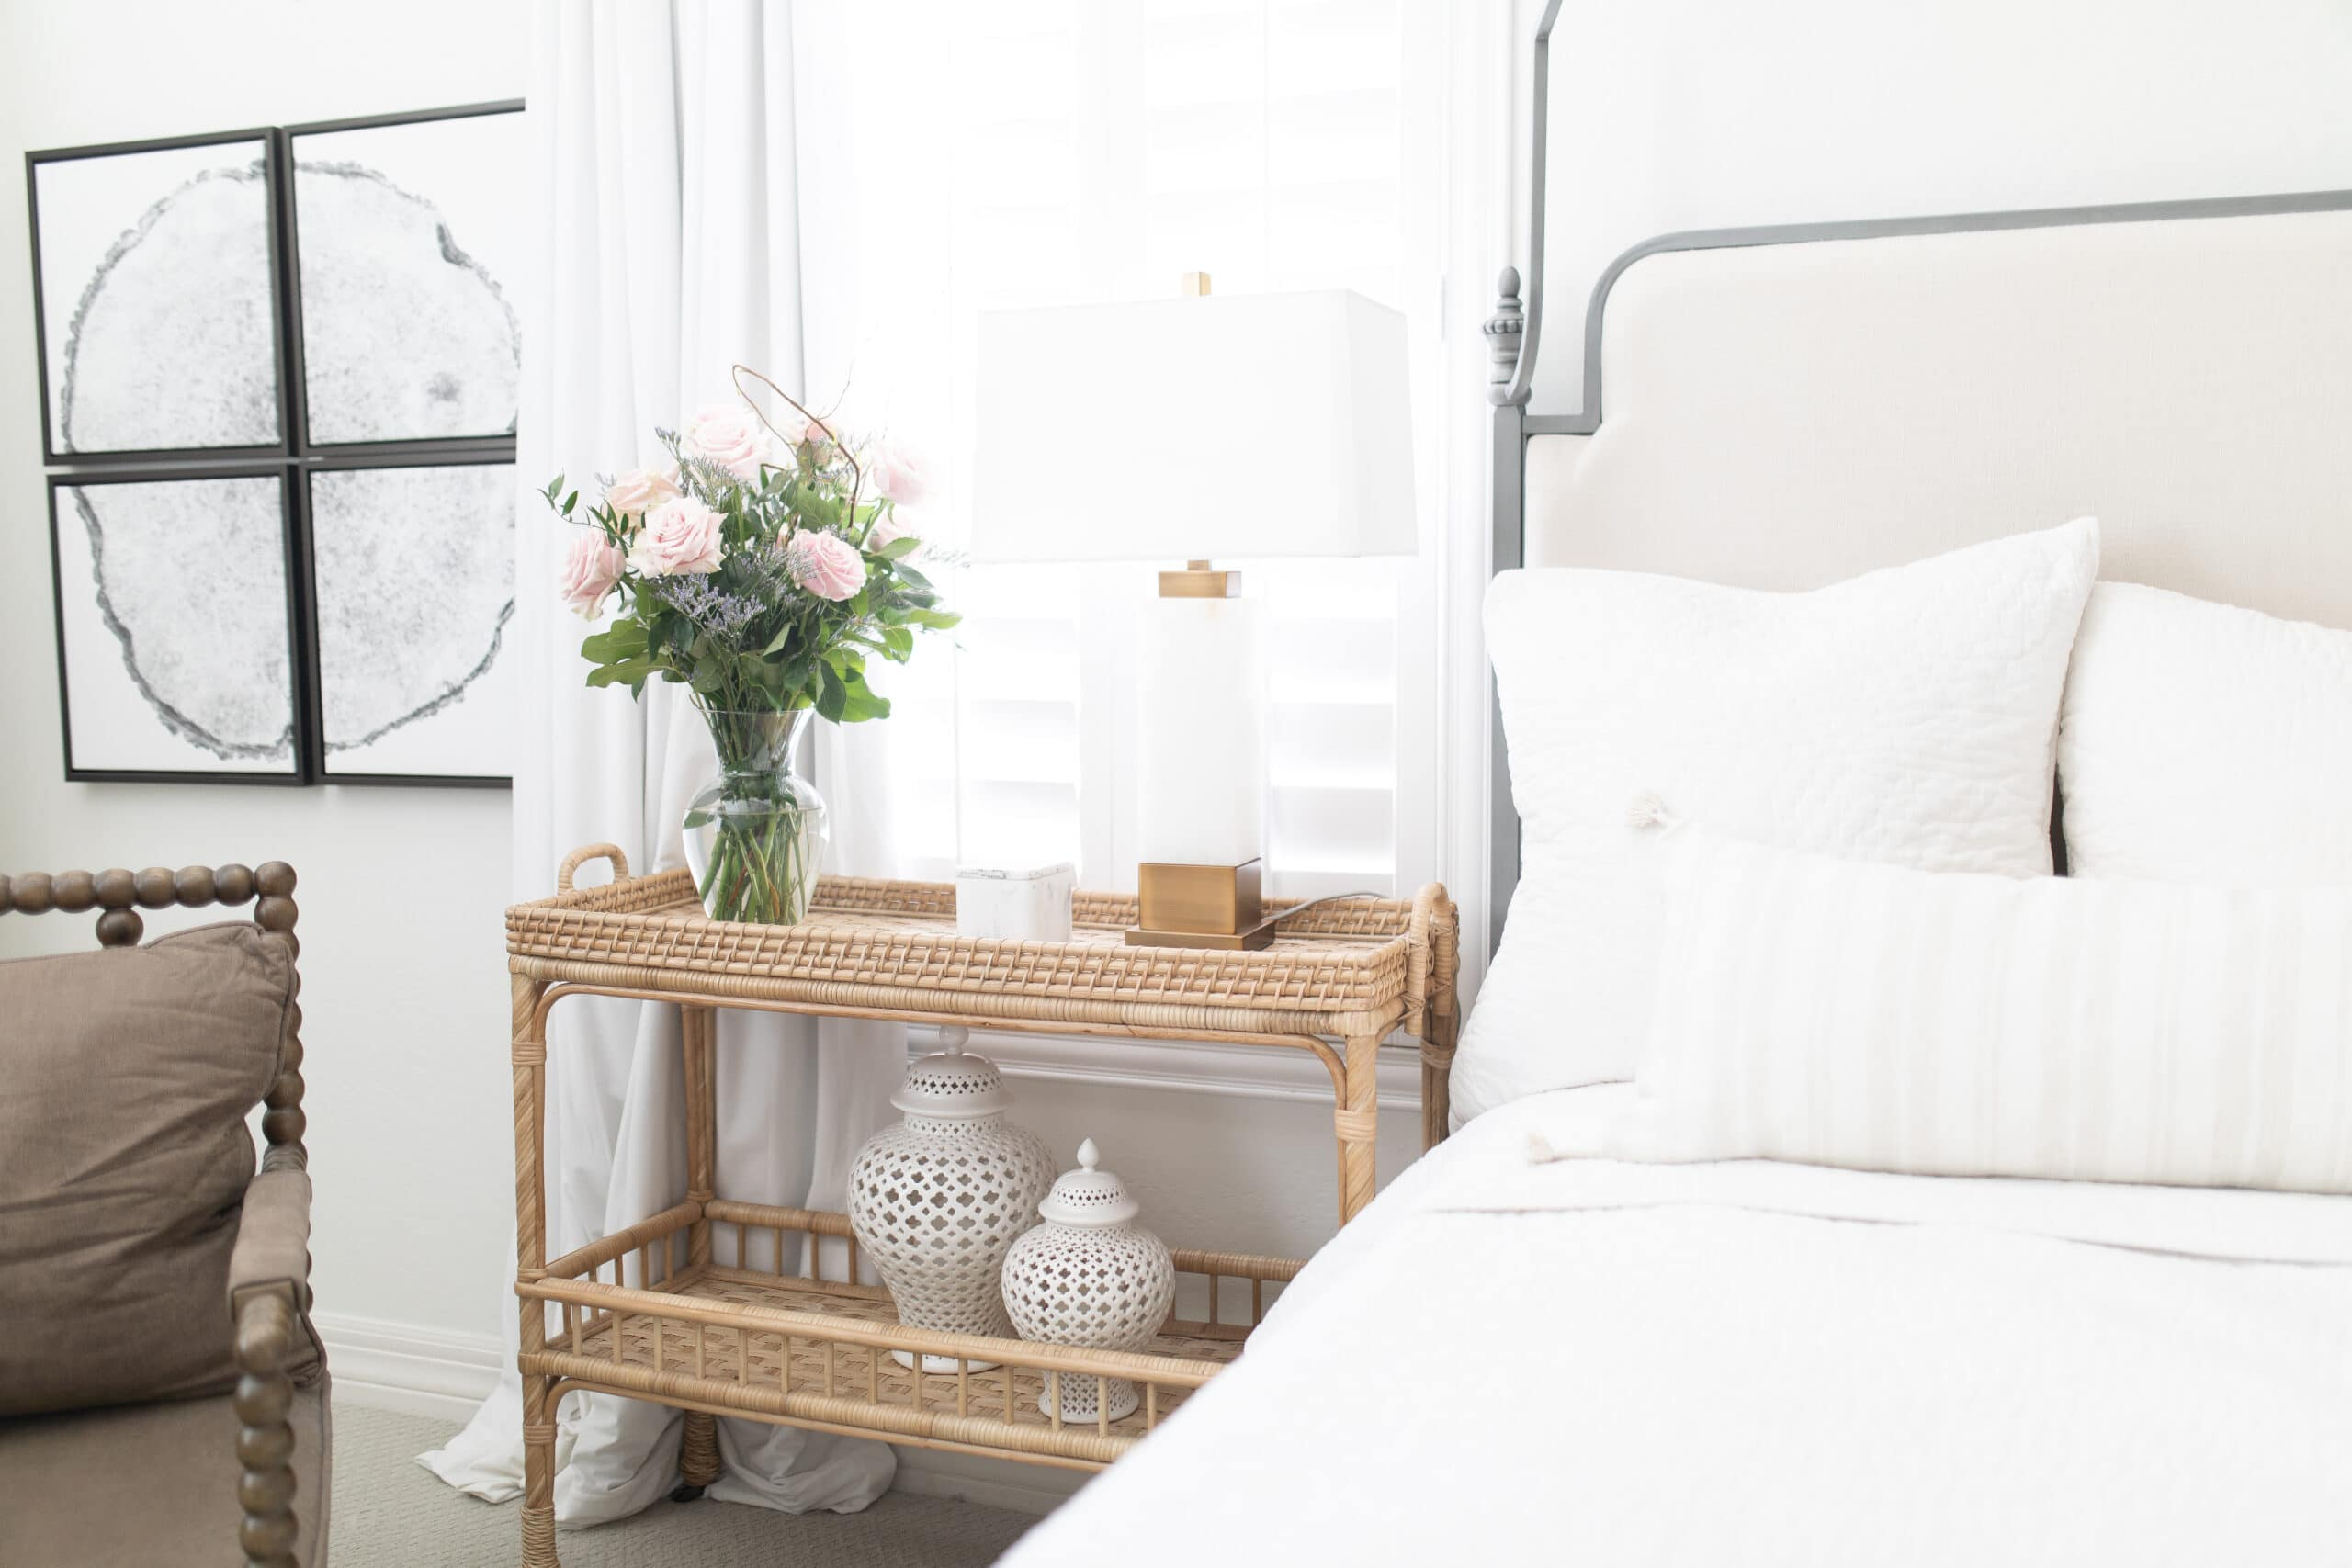 Rattan side table and nightstand